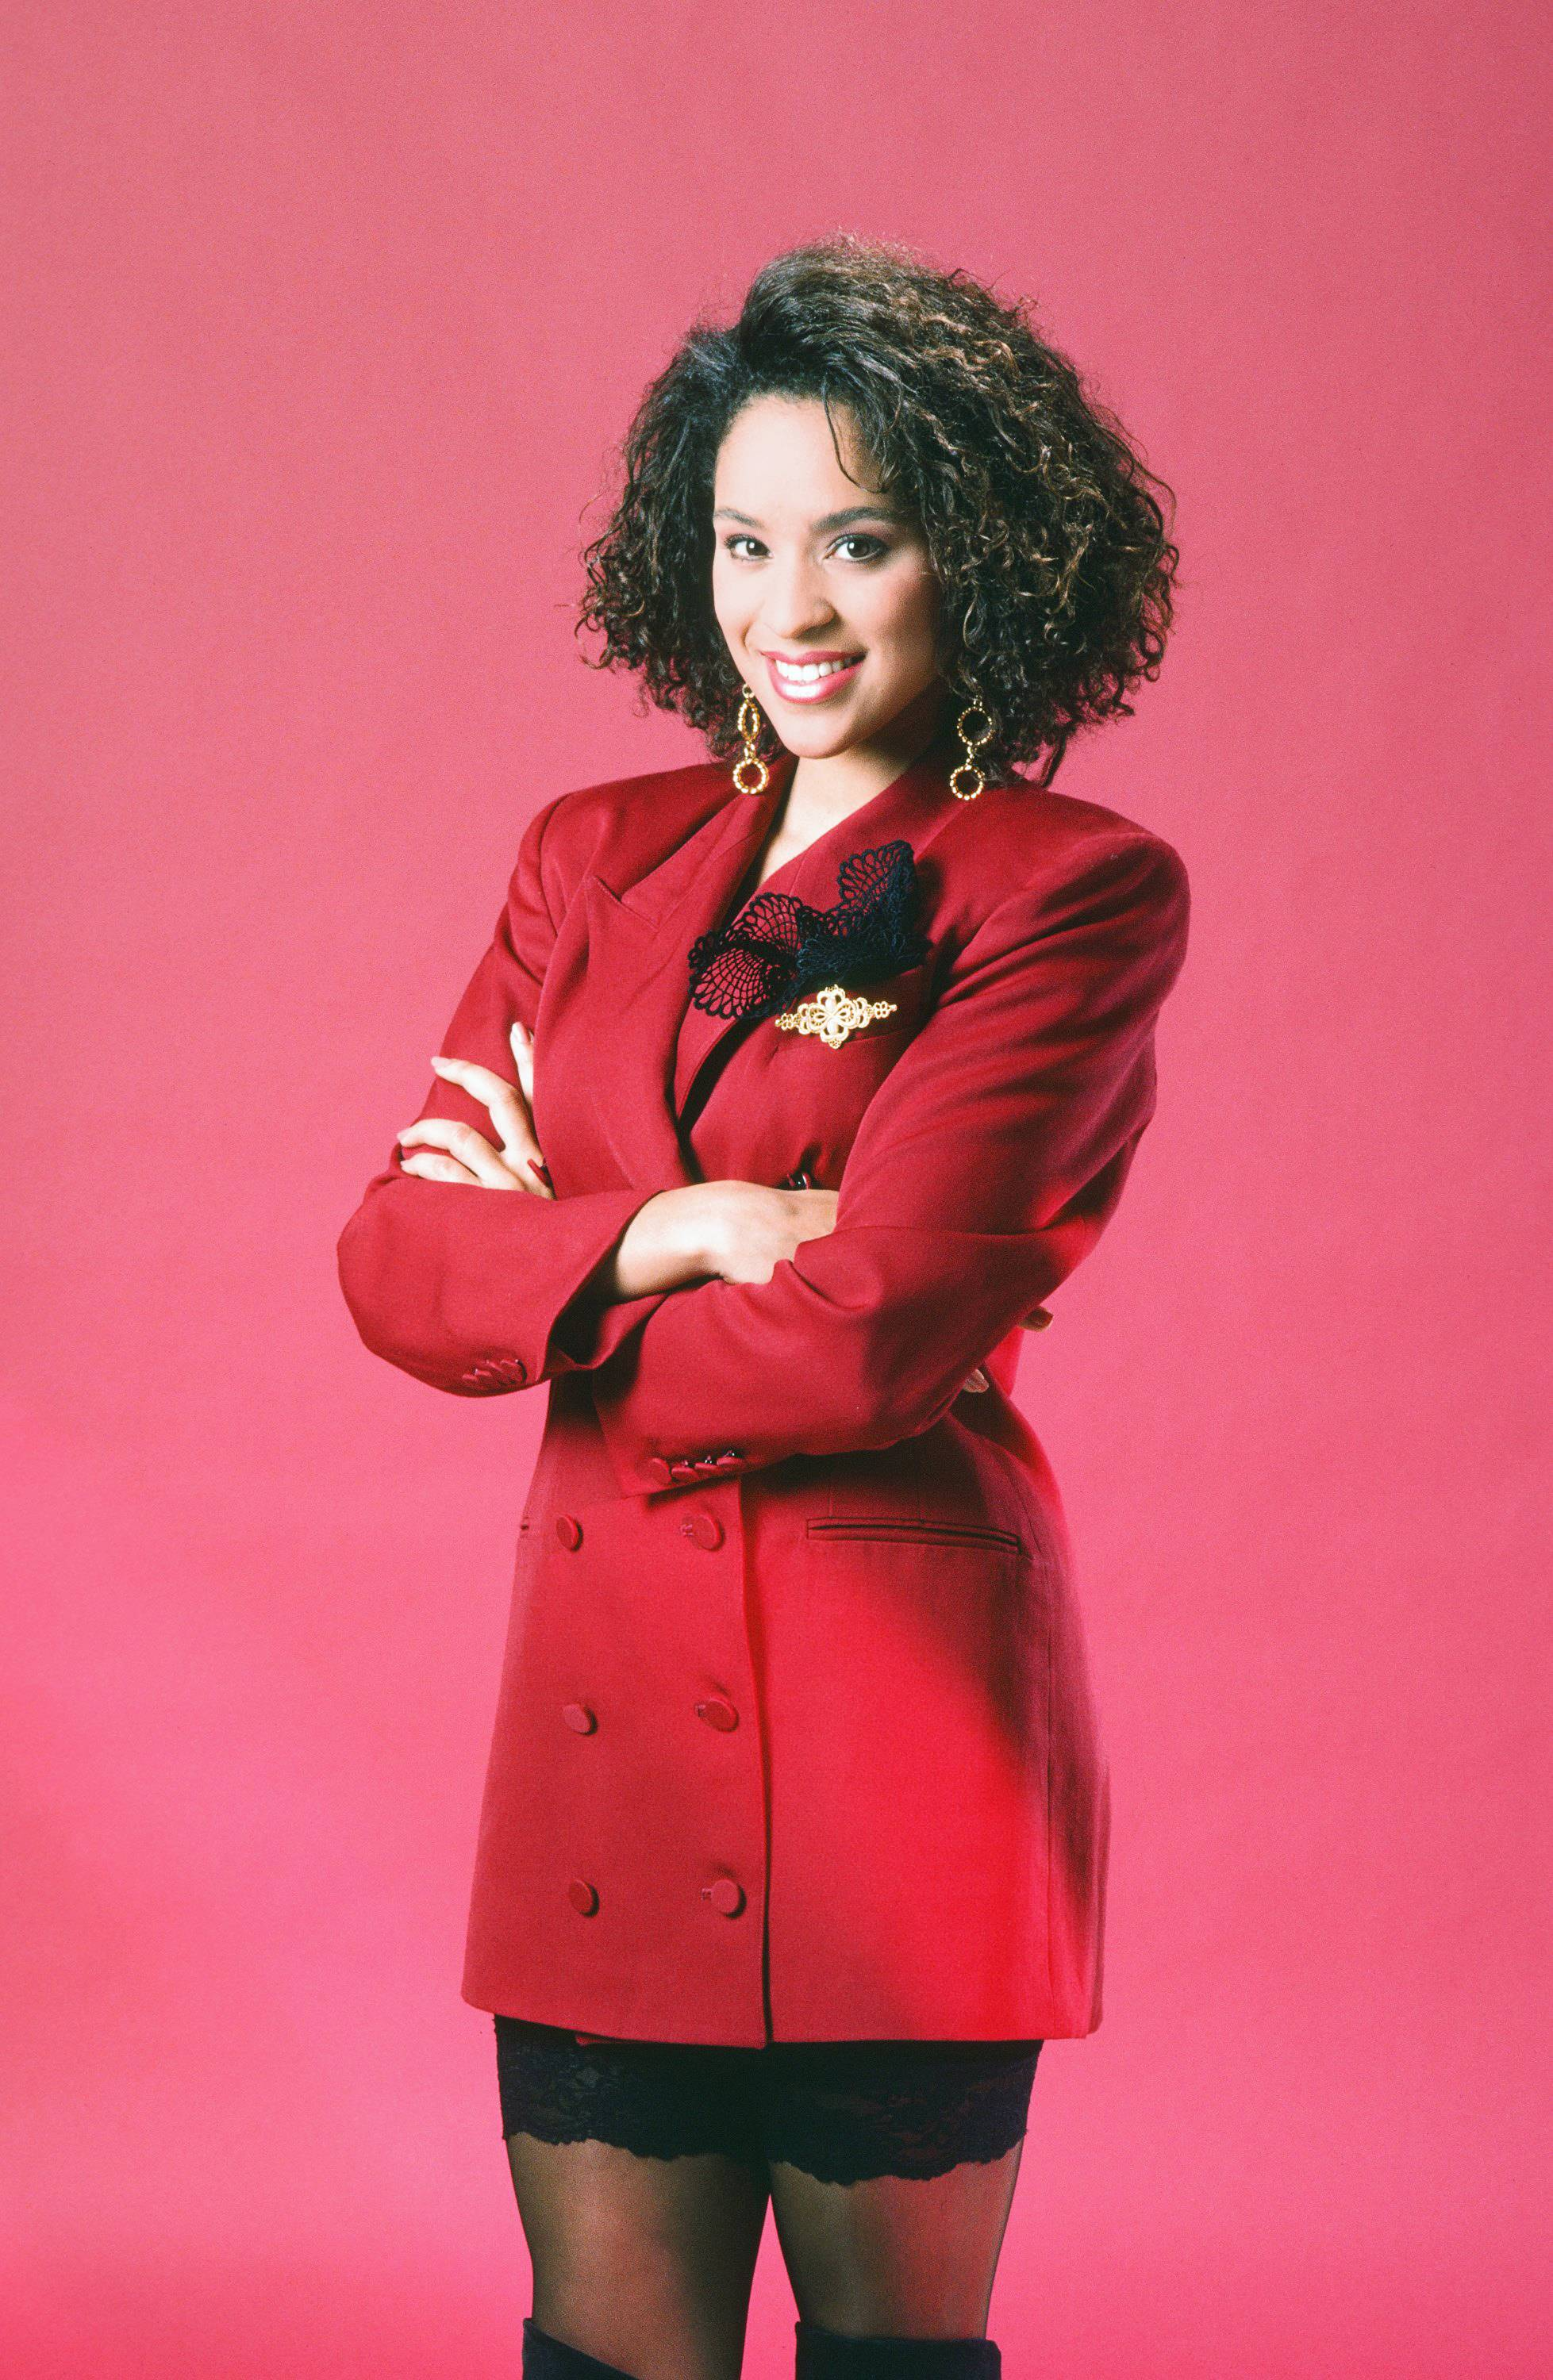 Karyn Parsons as Hilary Banks in The Fresh Prince of Bel-Air - (Photo: Gary Null/NBCU Photo Bank via Getty Images)